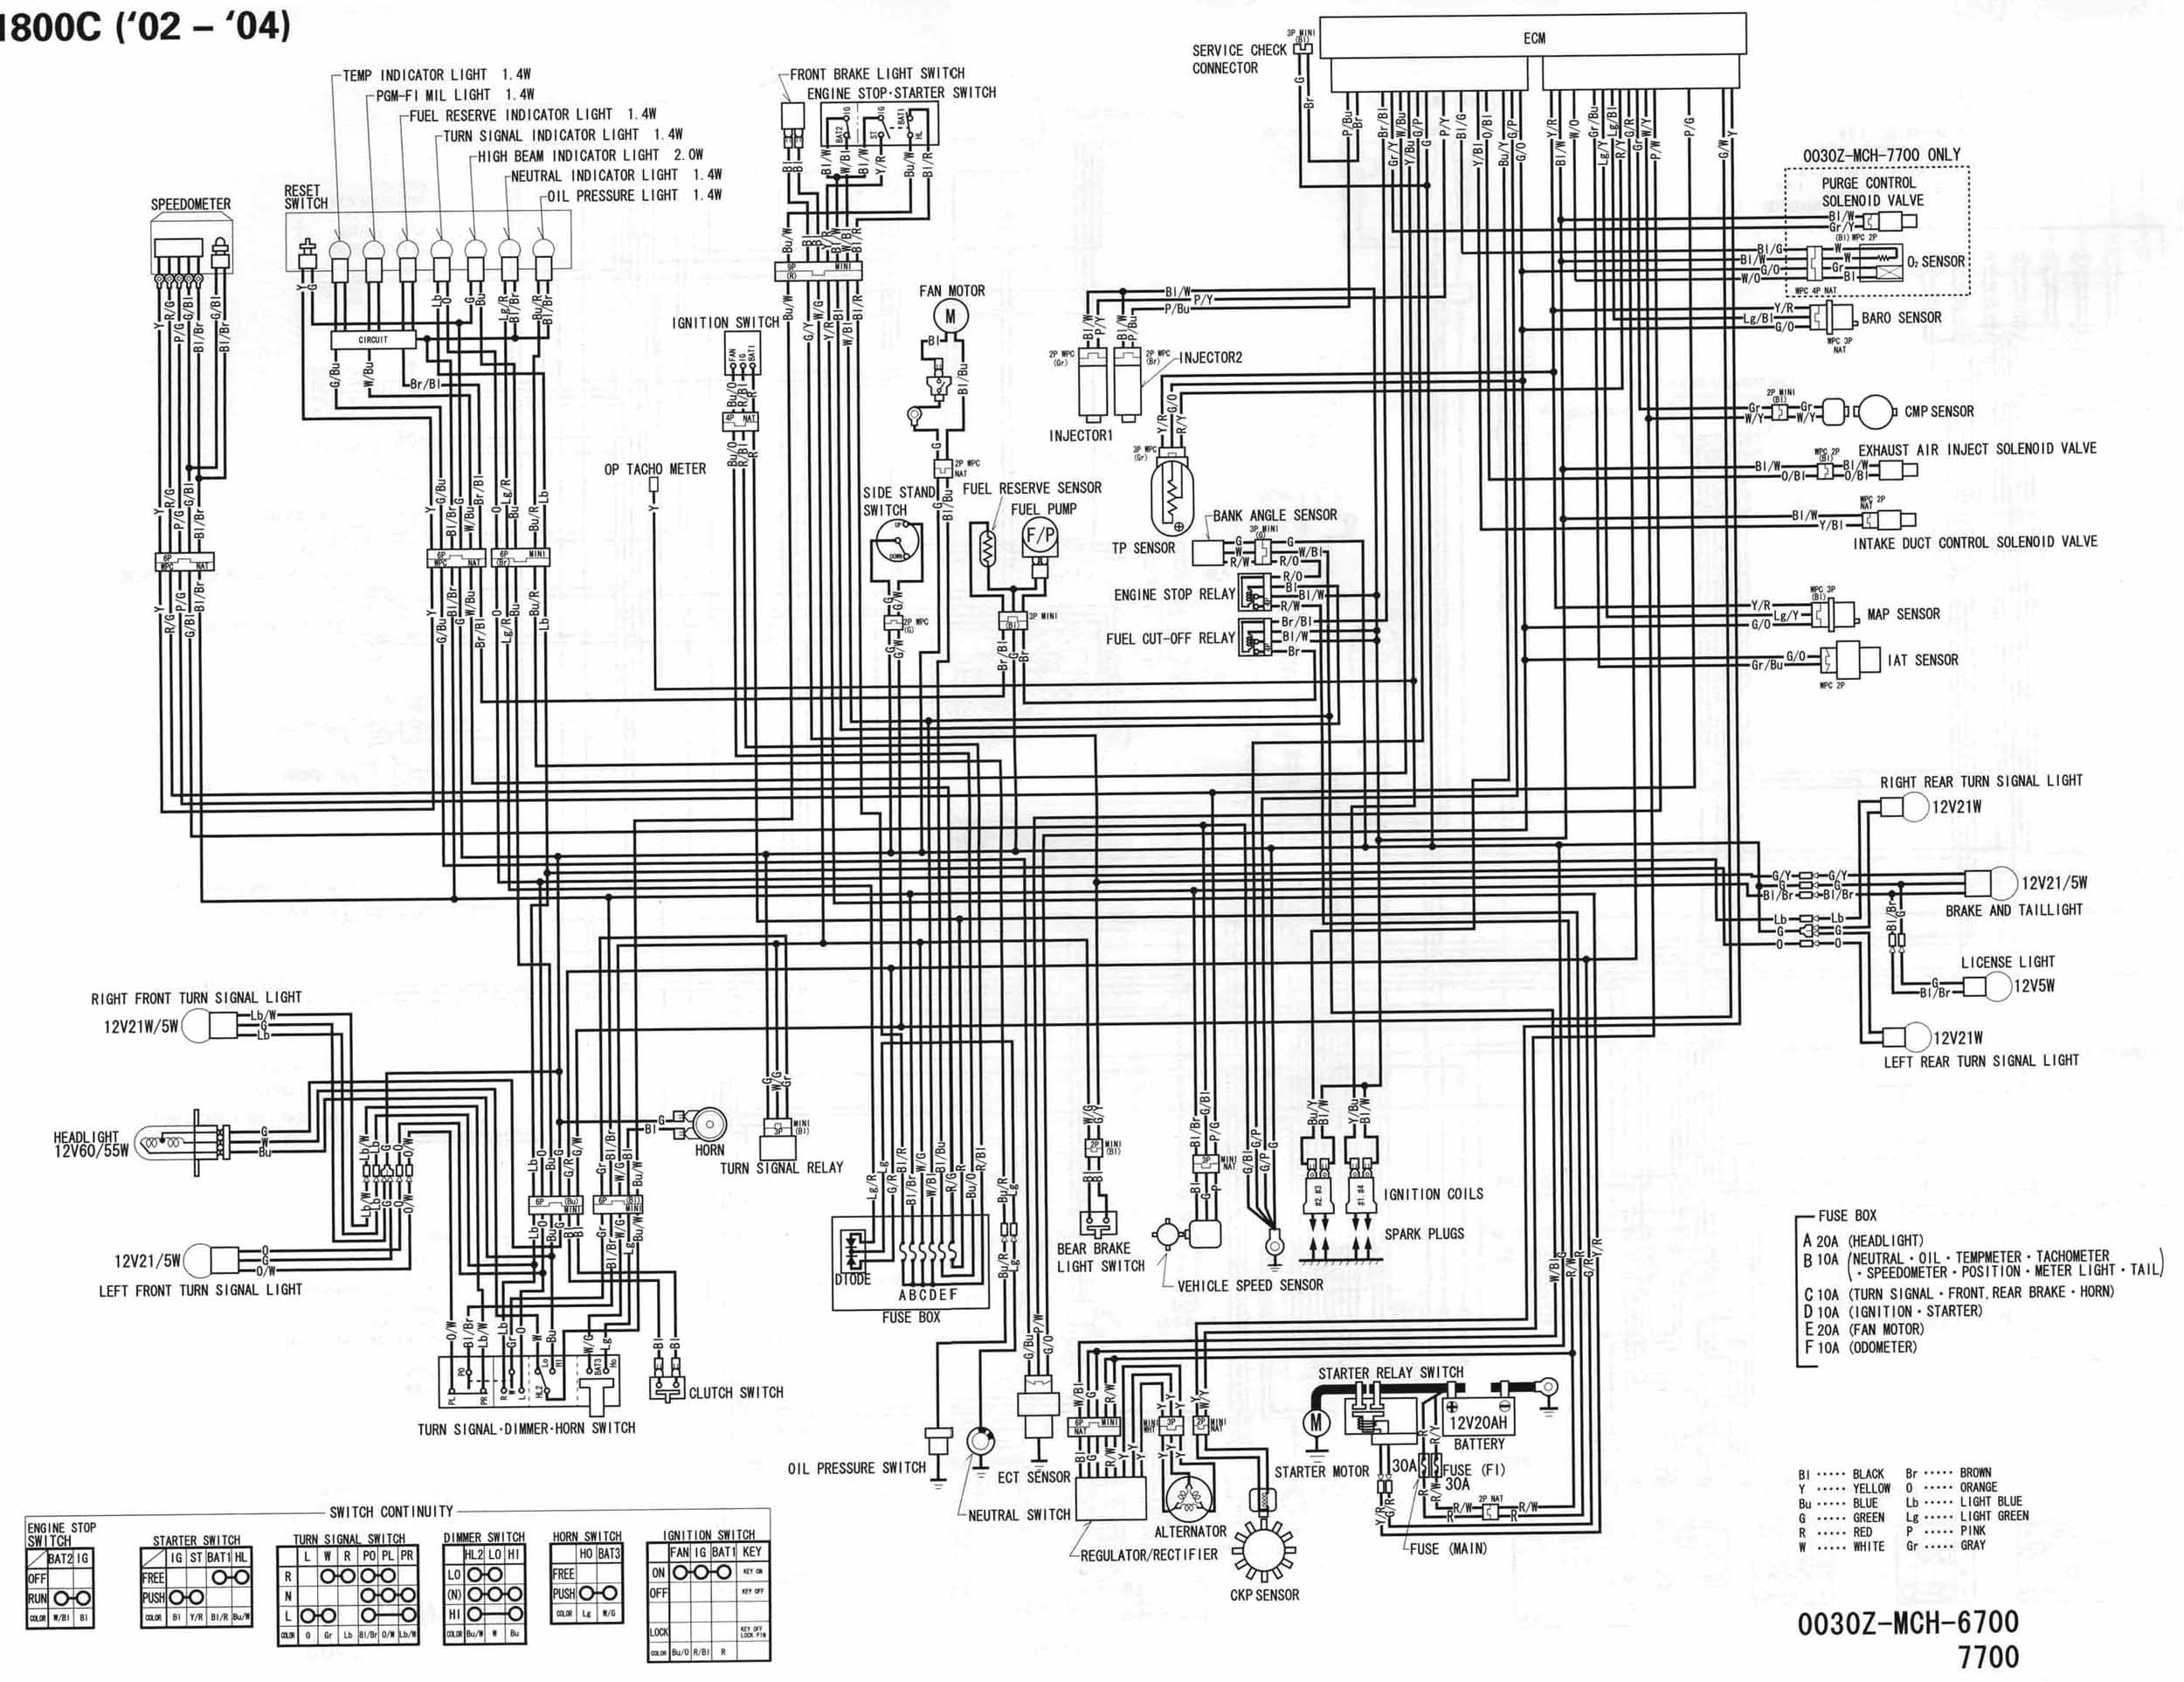 02 04_VTX1800_C_schematic motorcycle wire schematics bareass choppers motorcycle tech pages  at gsmportal.co